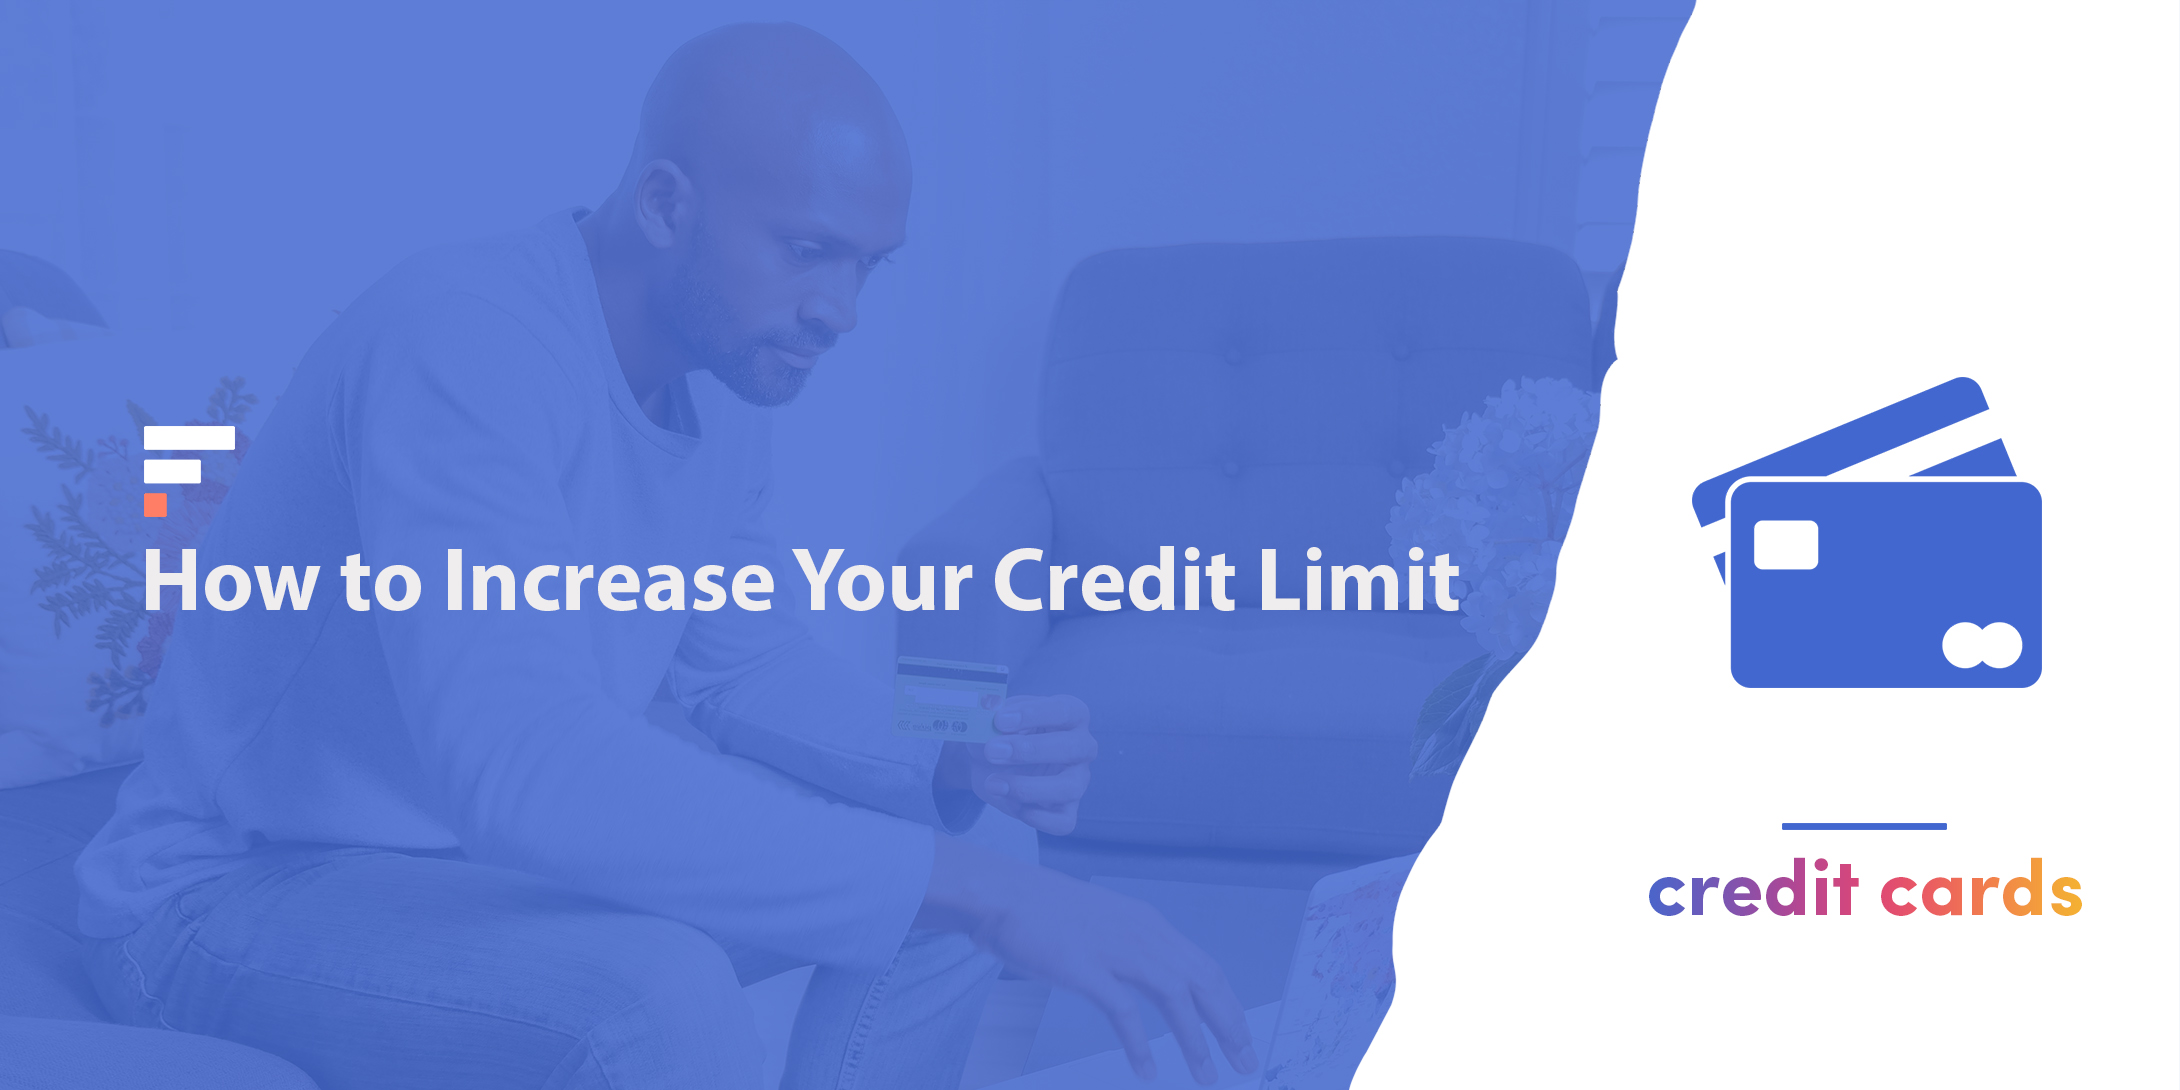 How to increase your credit limit